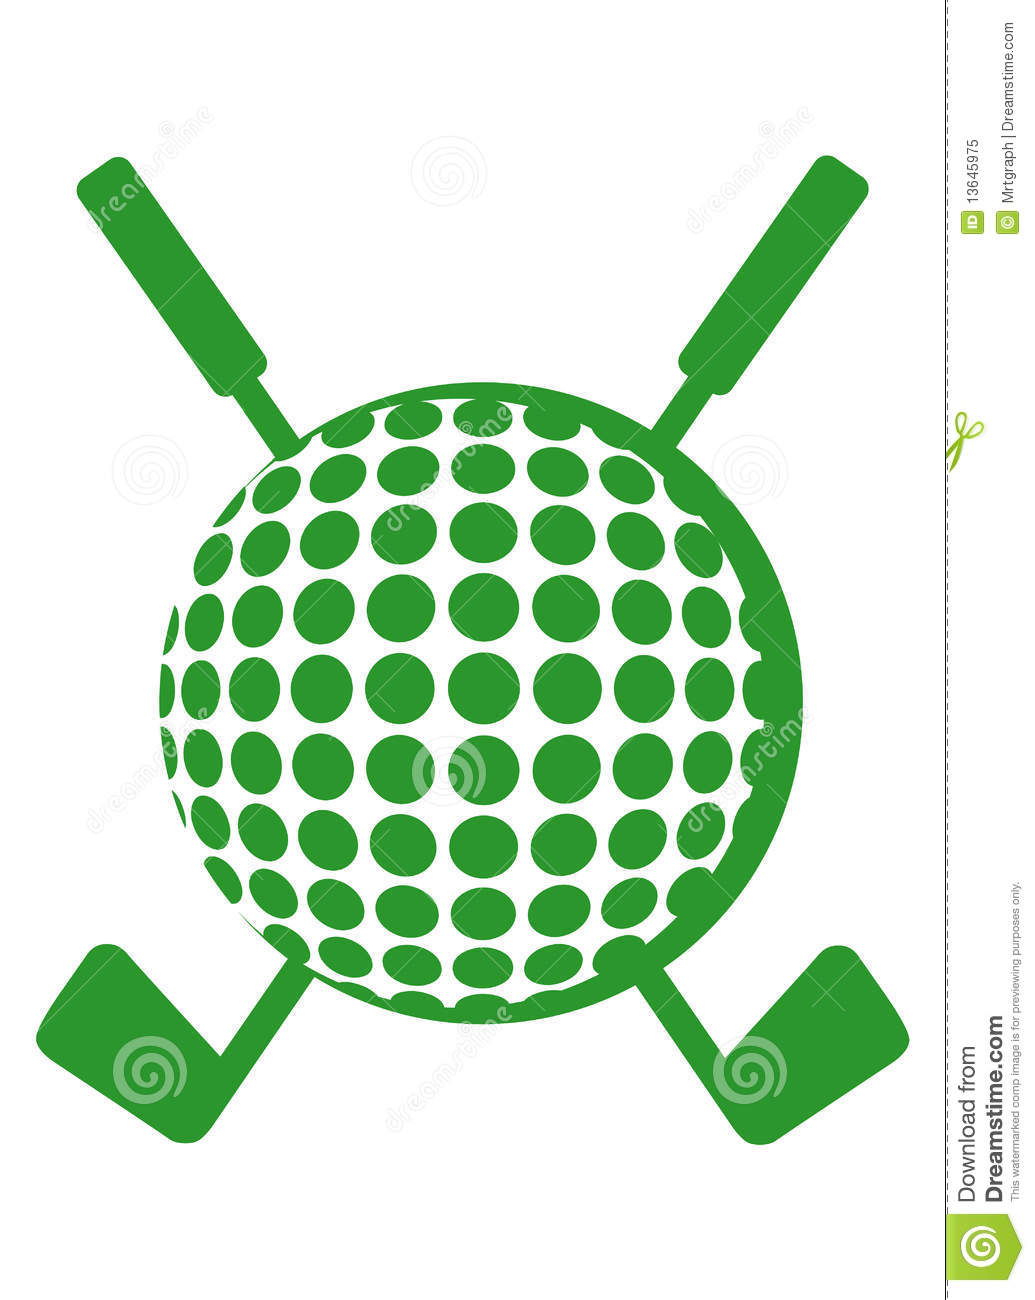 crossed-golf-clubs-with-golf-ball-golf-ball-crossed-clubs-13645975.jpg